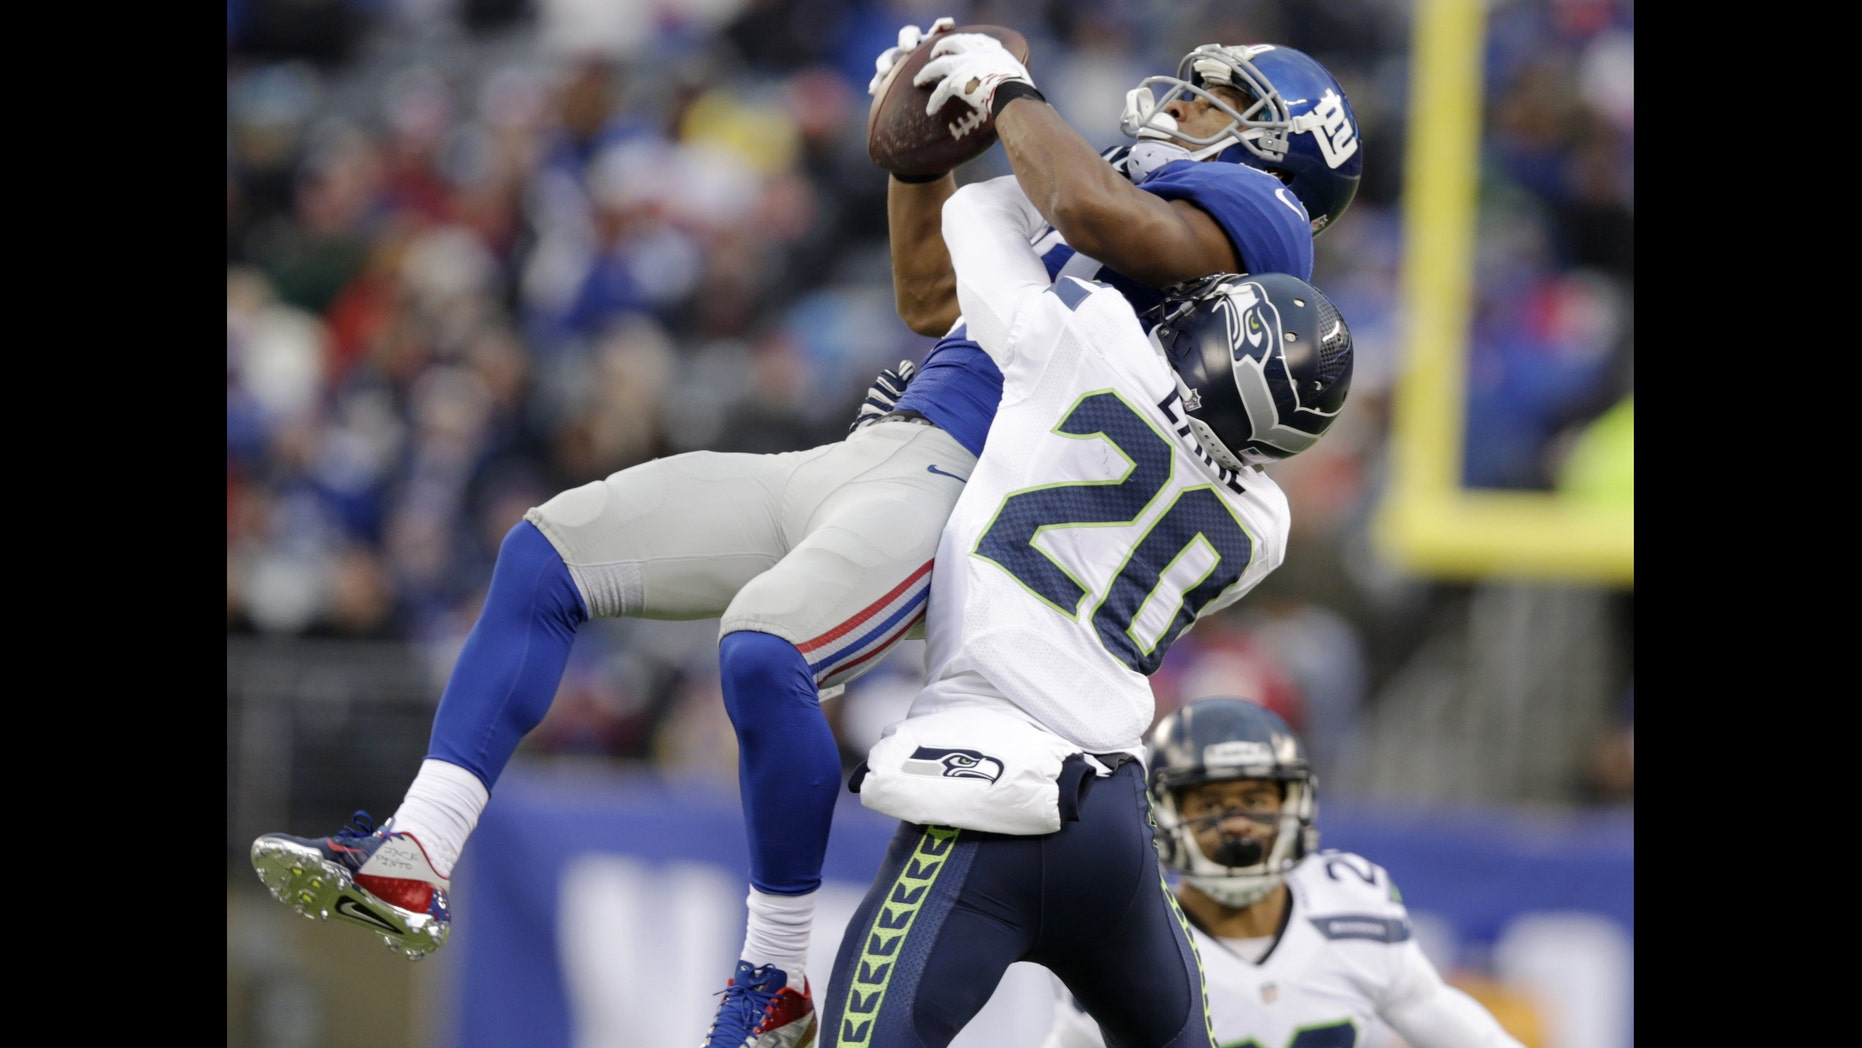 New York Giants wide receiver Victor Cruz, left, makes a catch as Seattle Seahawks cornerback Jeremy Lane defends on the play during the second half of an NFL football game, Sunday, Dec. 15, 2013, in East Rutherford, N.J. Cruz was banged up on the play and left the game with an injury. (AP Photo/Kathy Willens)